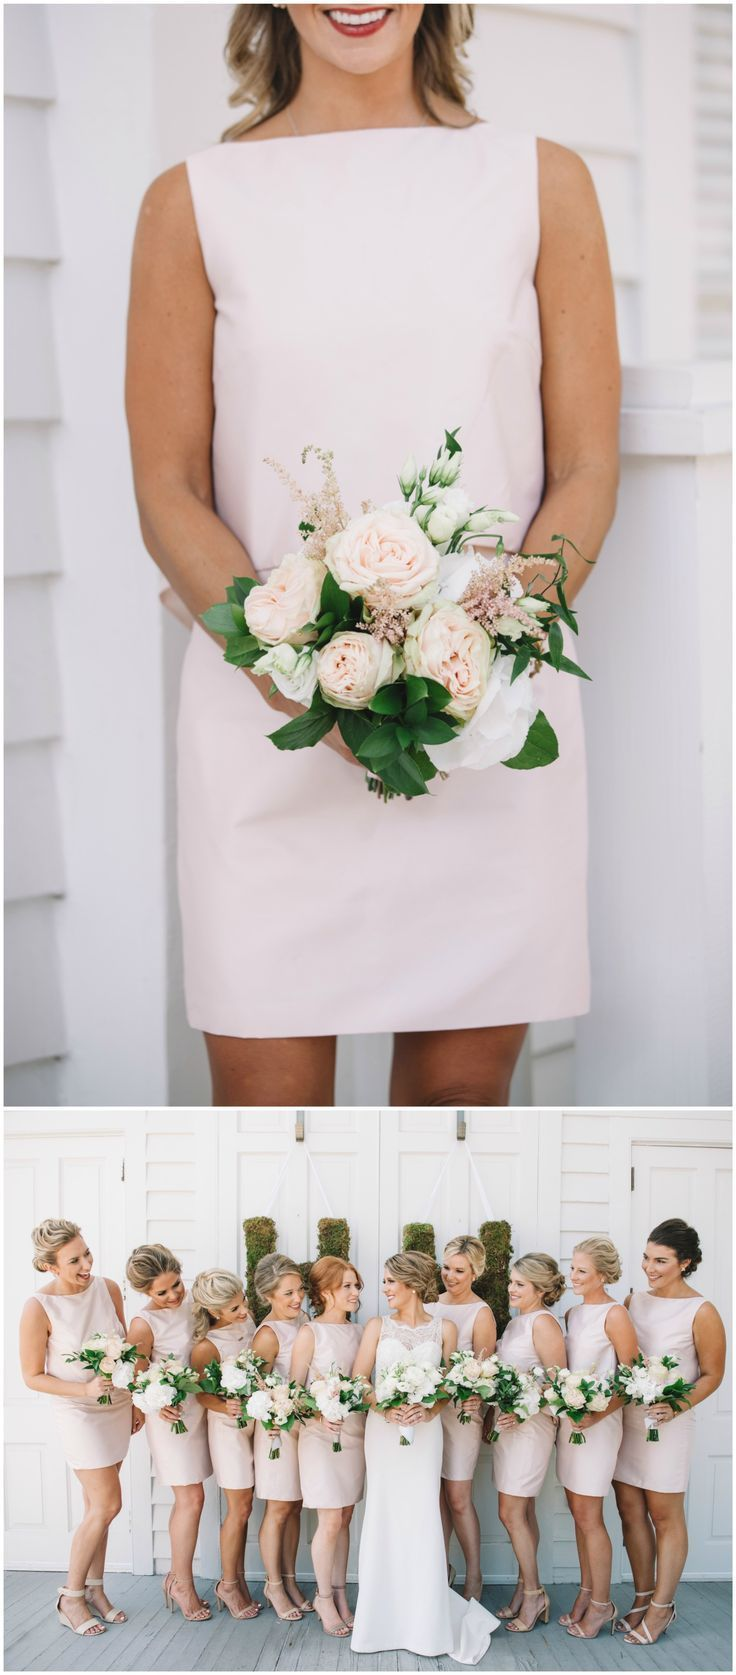 Southern style wedding dresses  Short light pink bridesmaid dresses mod style wedding bouquets of